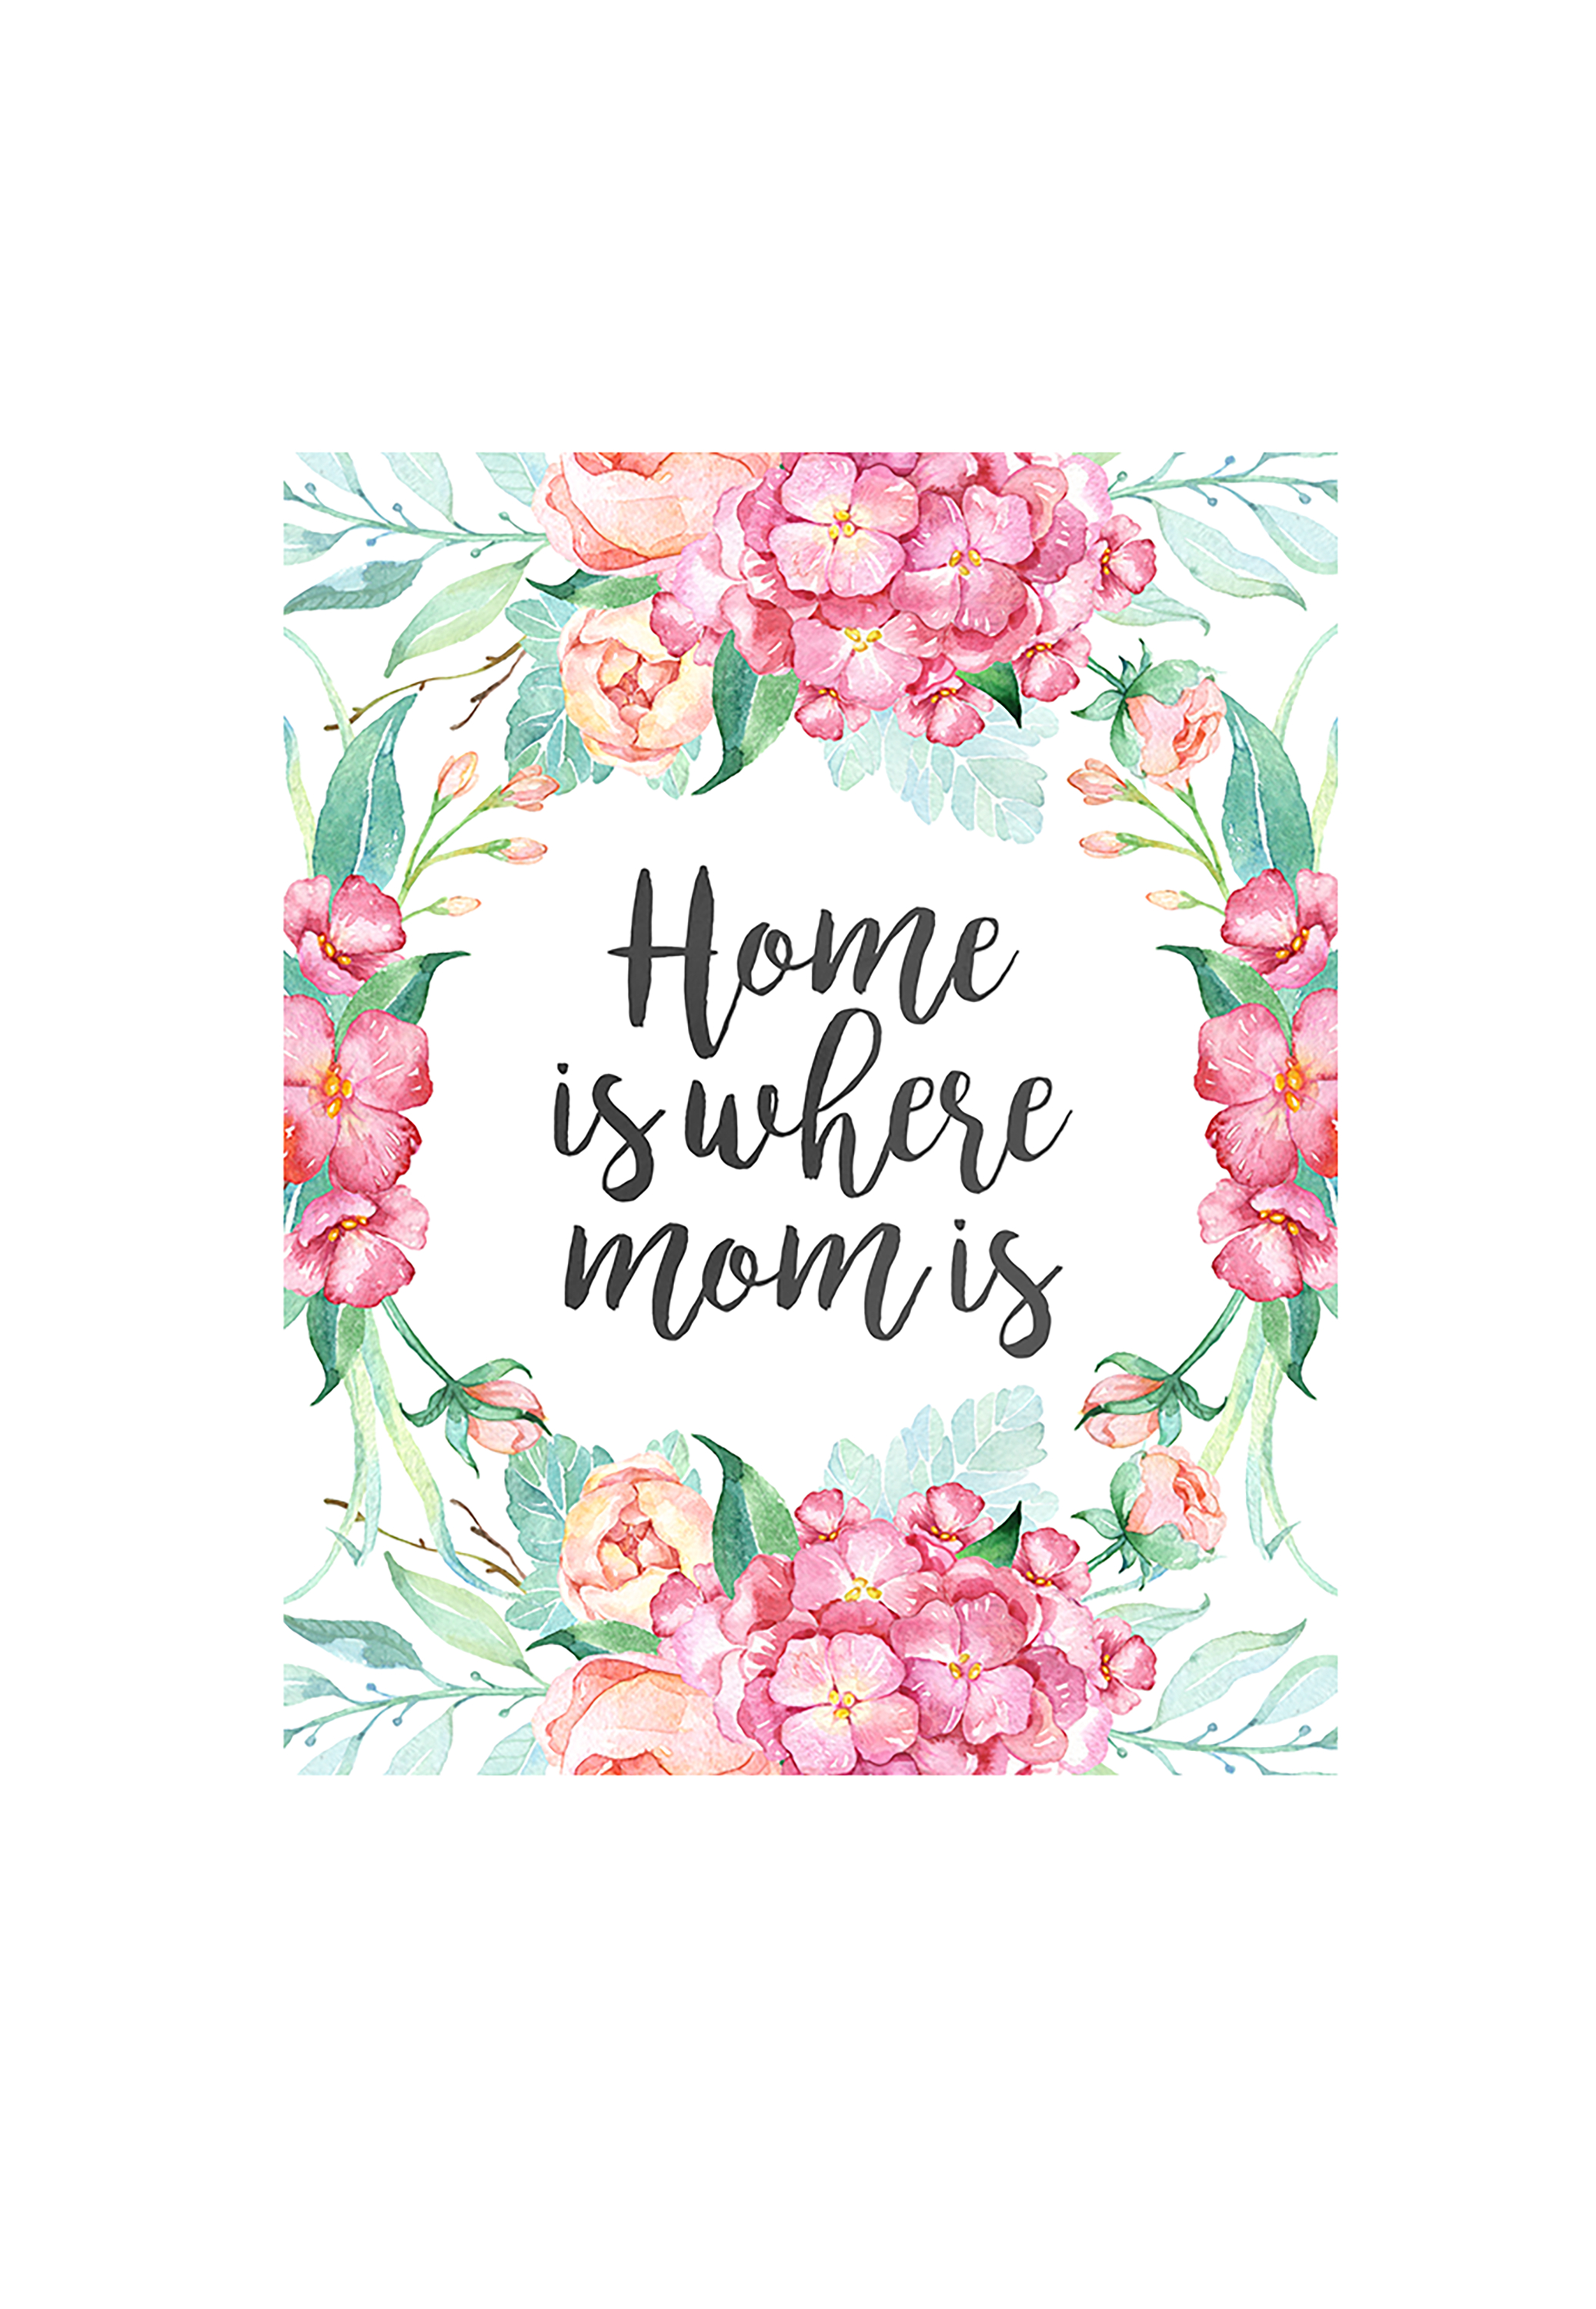 23 Mothers Day Cards - Free Printable Mother's Day Cards - Free Printable Mothers Day Card From Dog